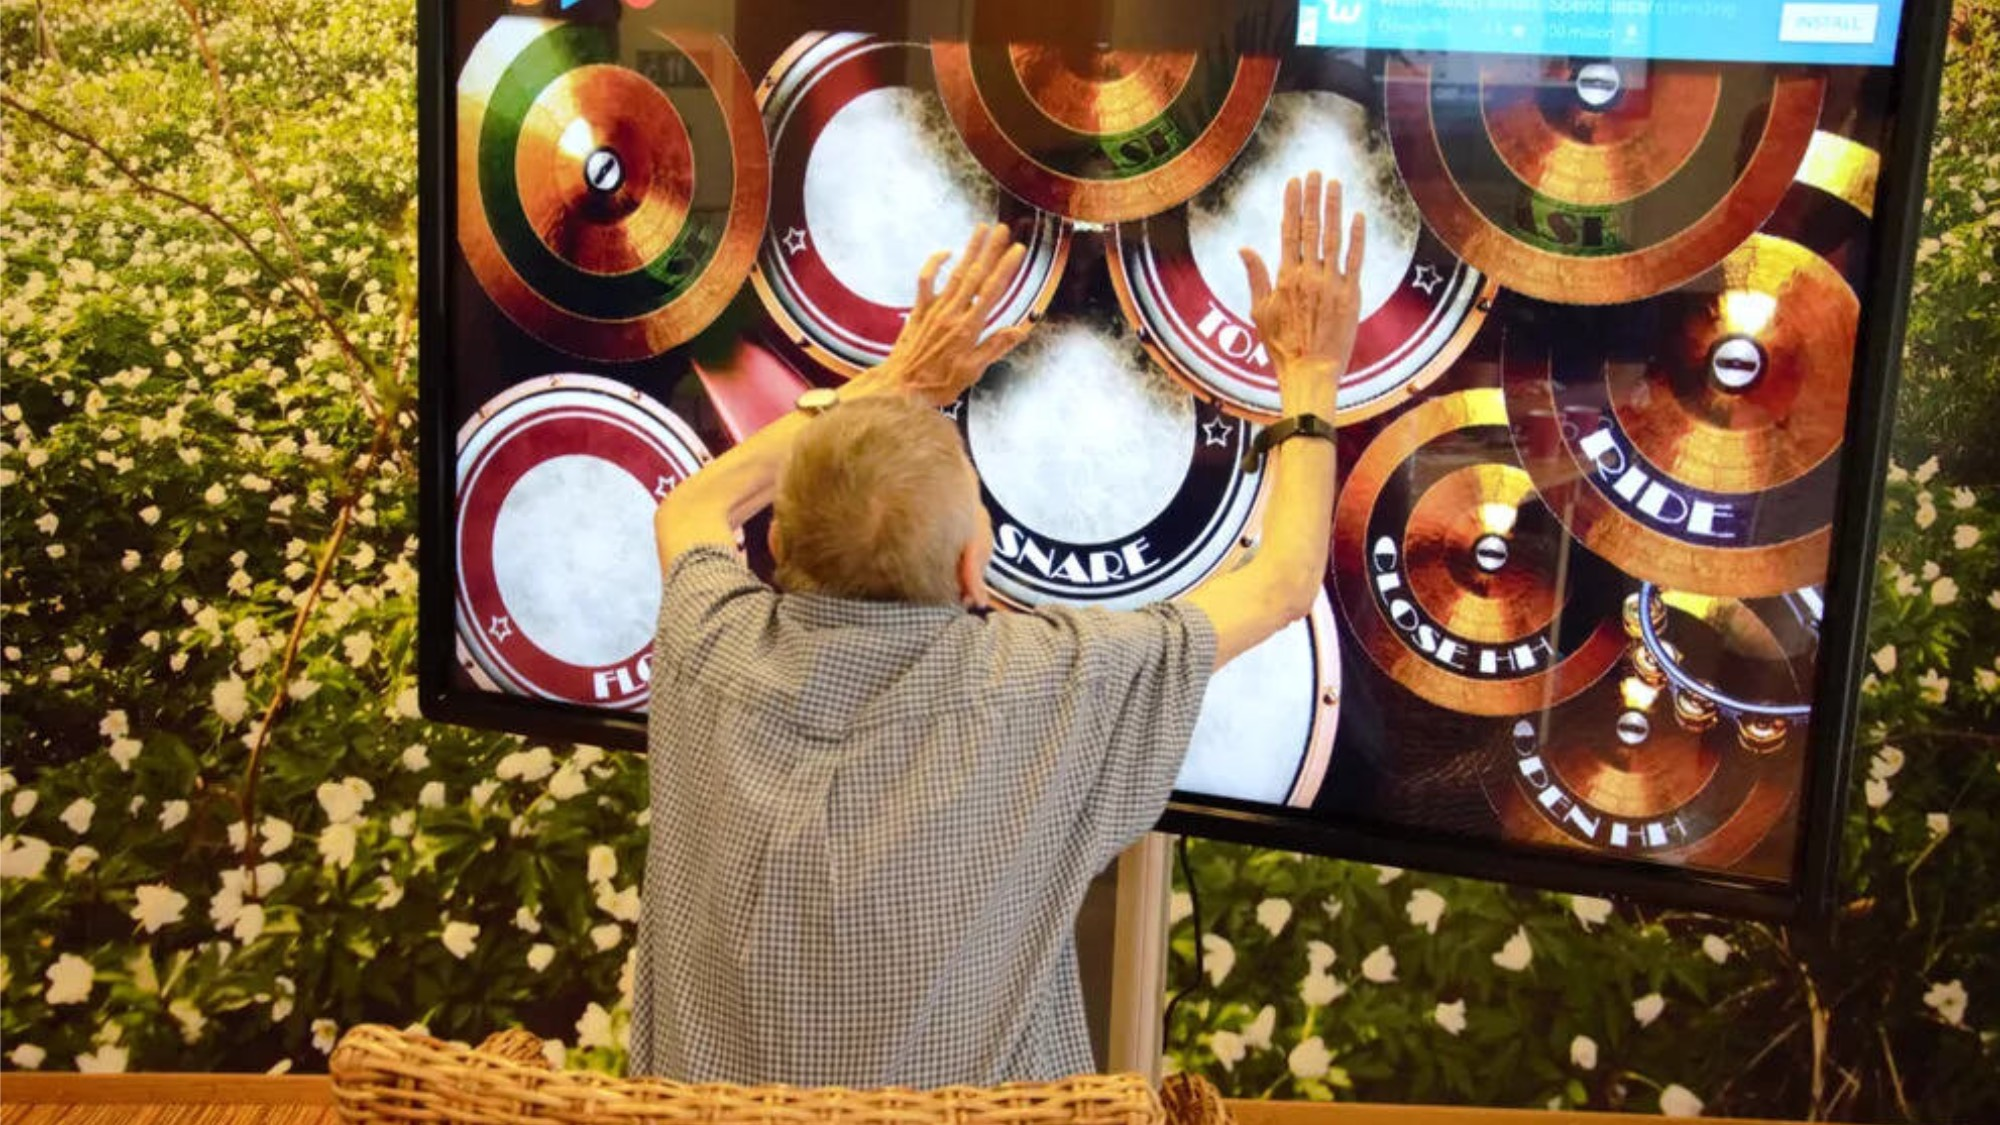 An old man tapping on drums displayed on a massive screen